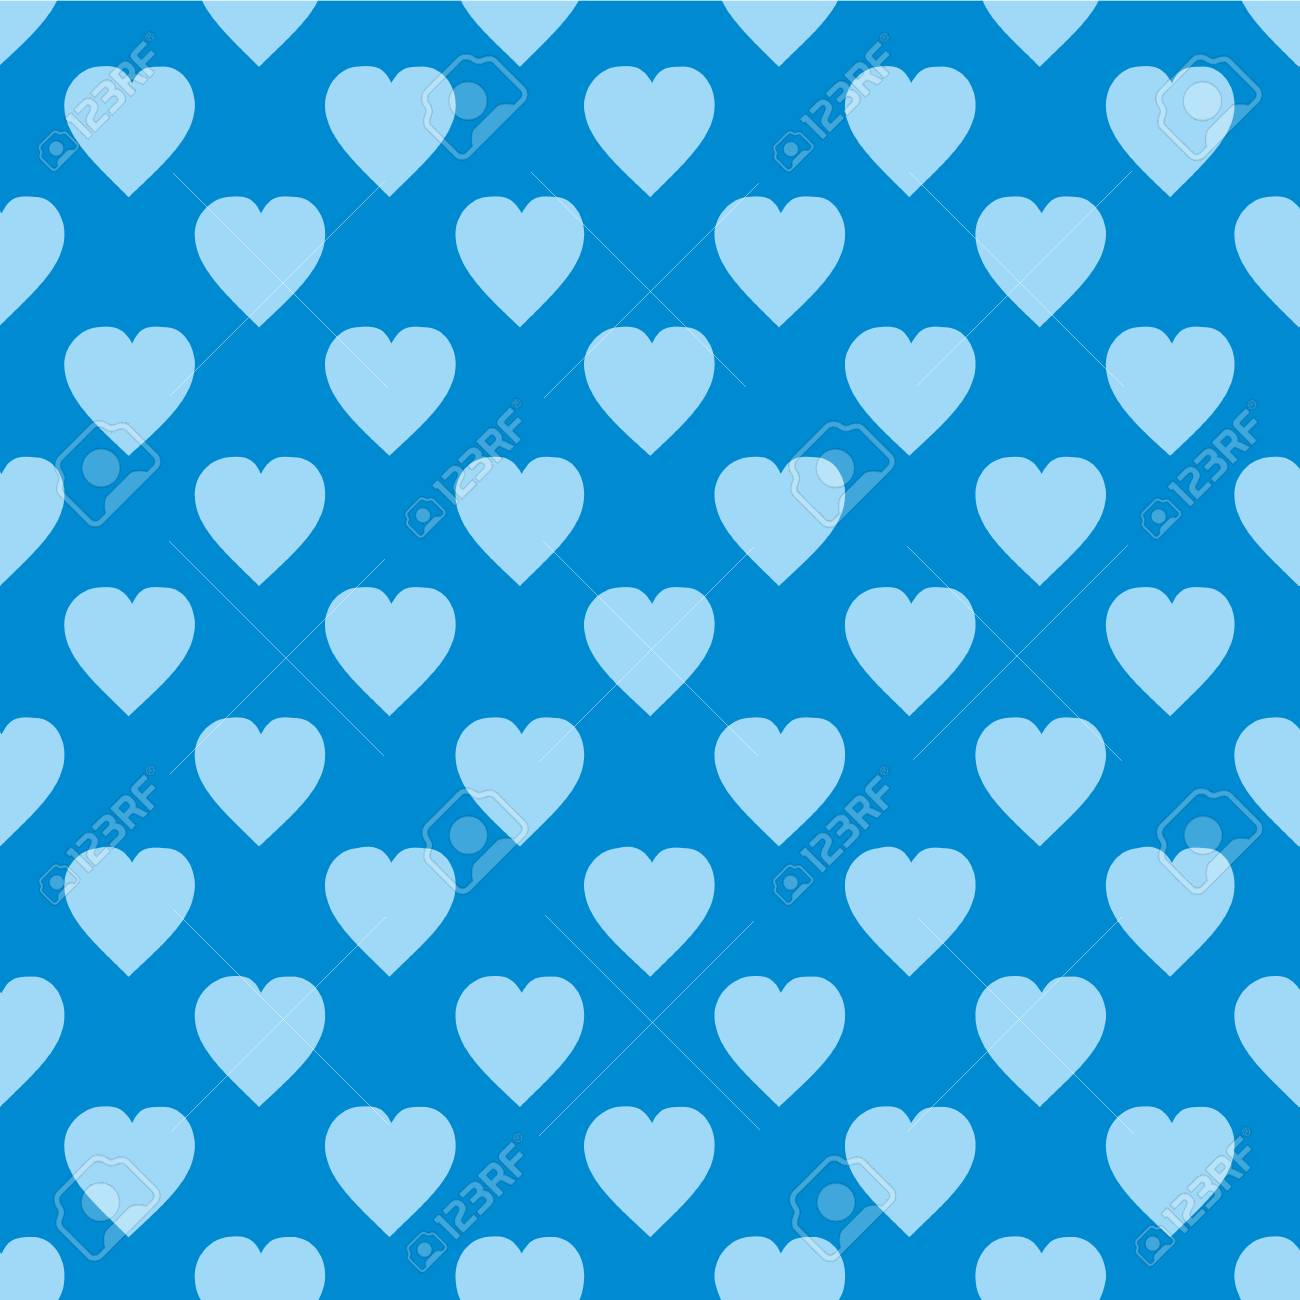 Pattern With Hearts Flat Scandinavian Style For Print On Fabric